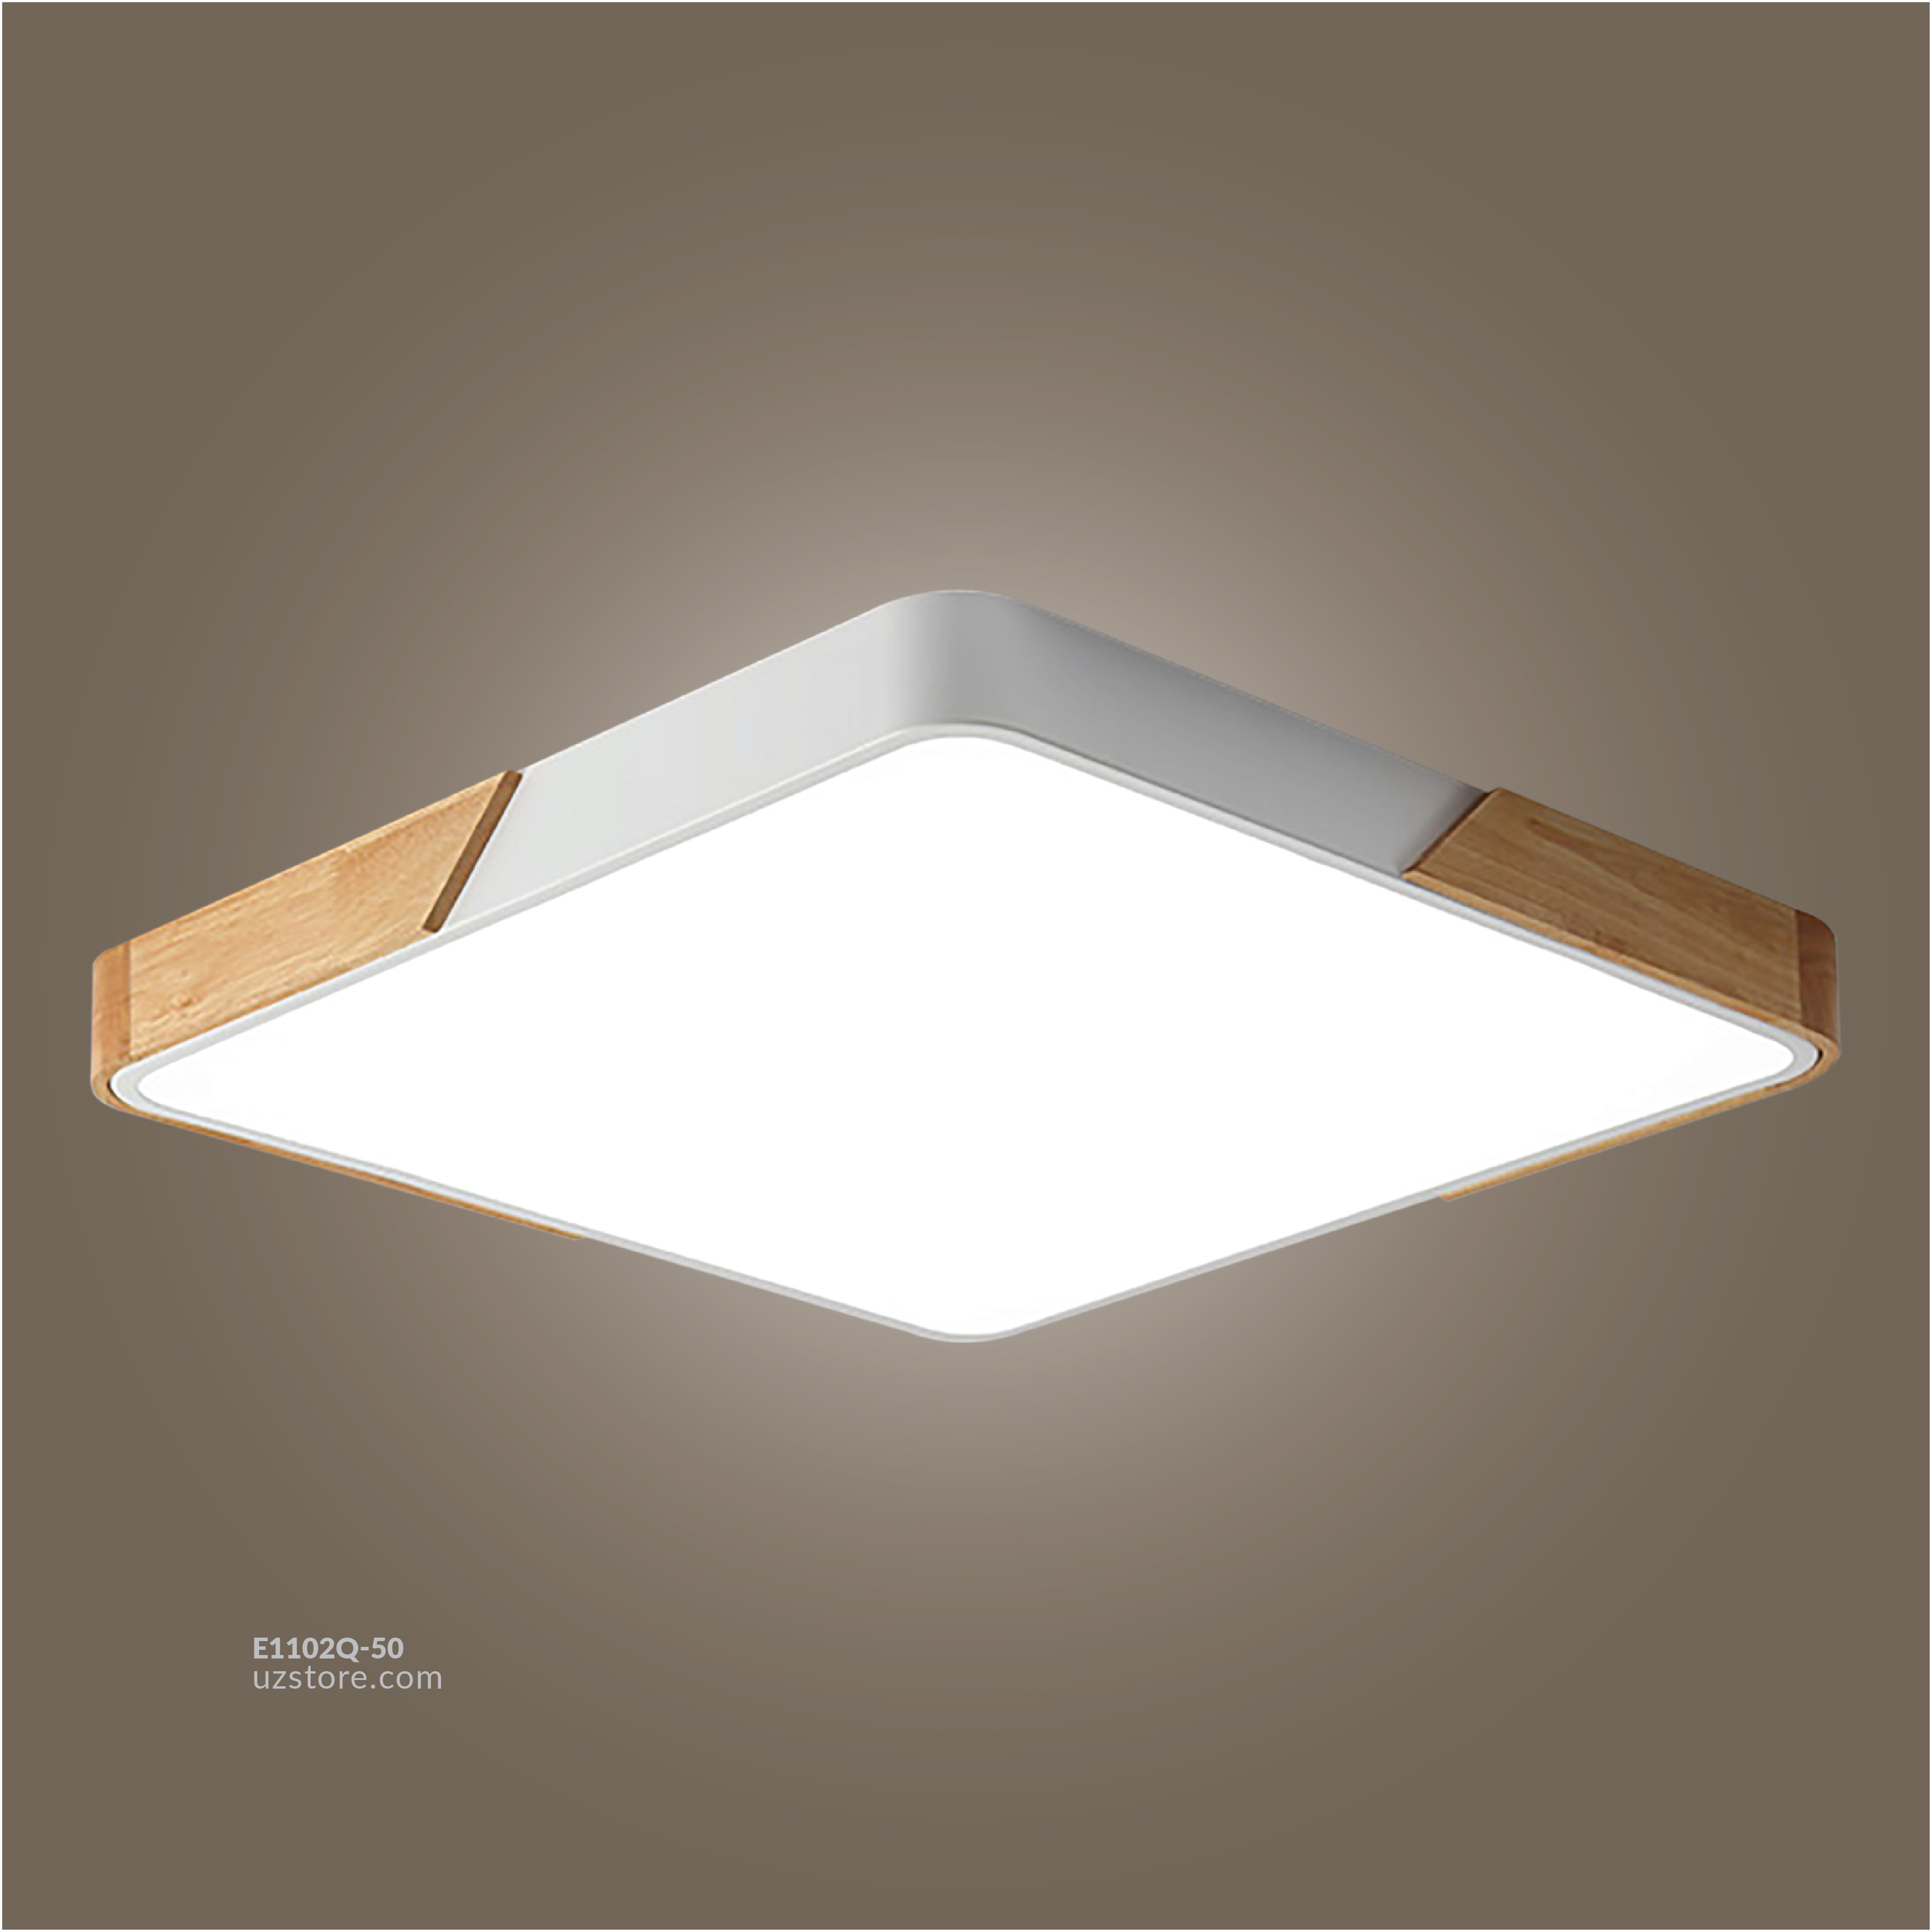 LED Celling Light 530